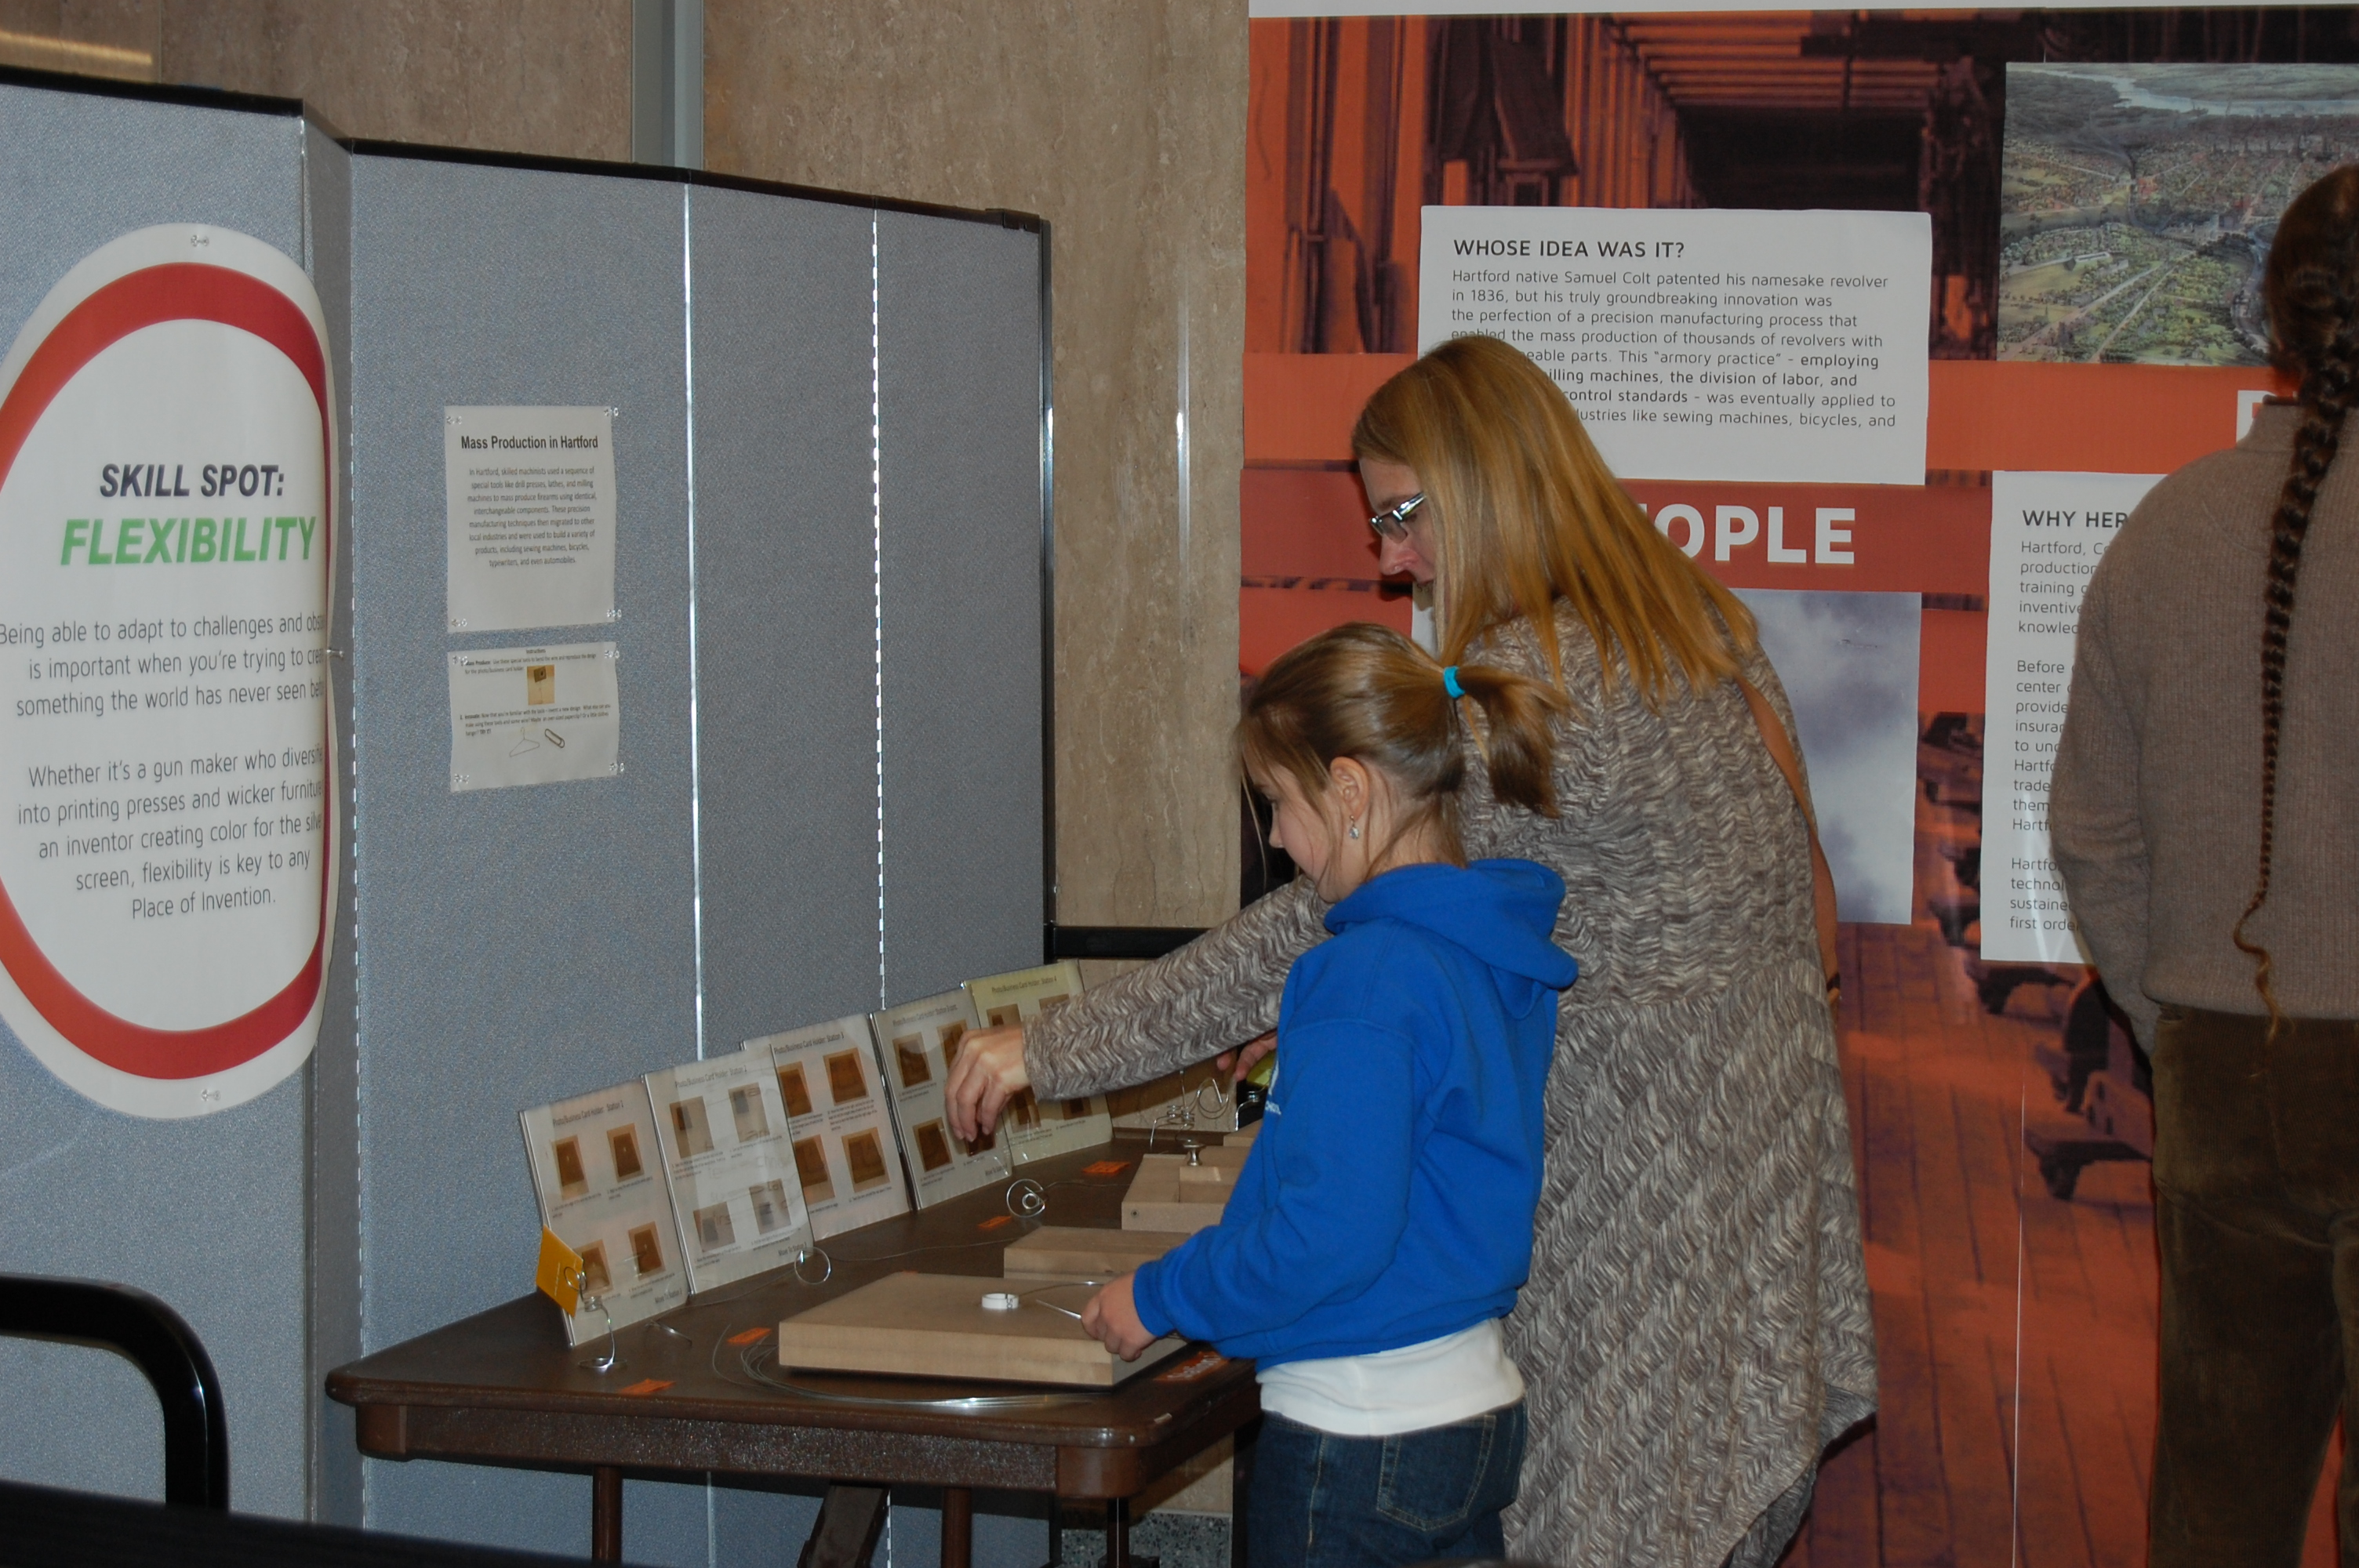 Visitors testing an interactive where they are asked to use a jig to twist wire into a business card holder.